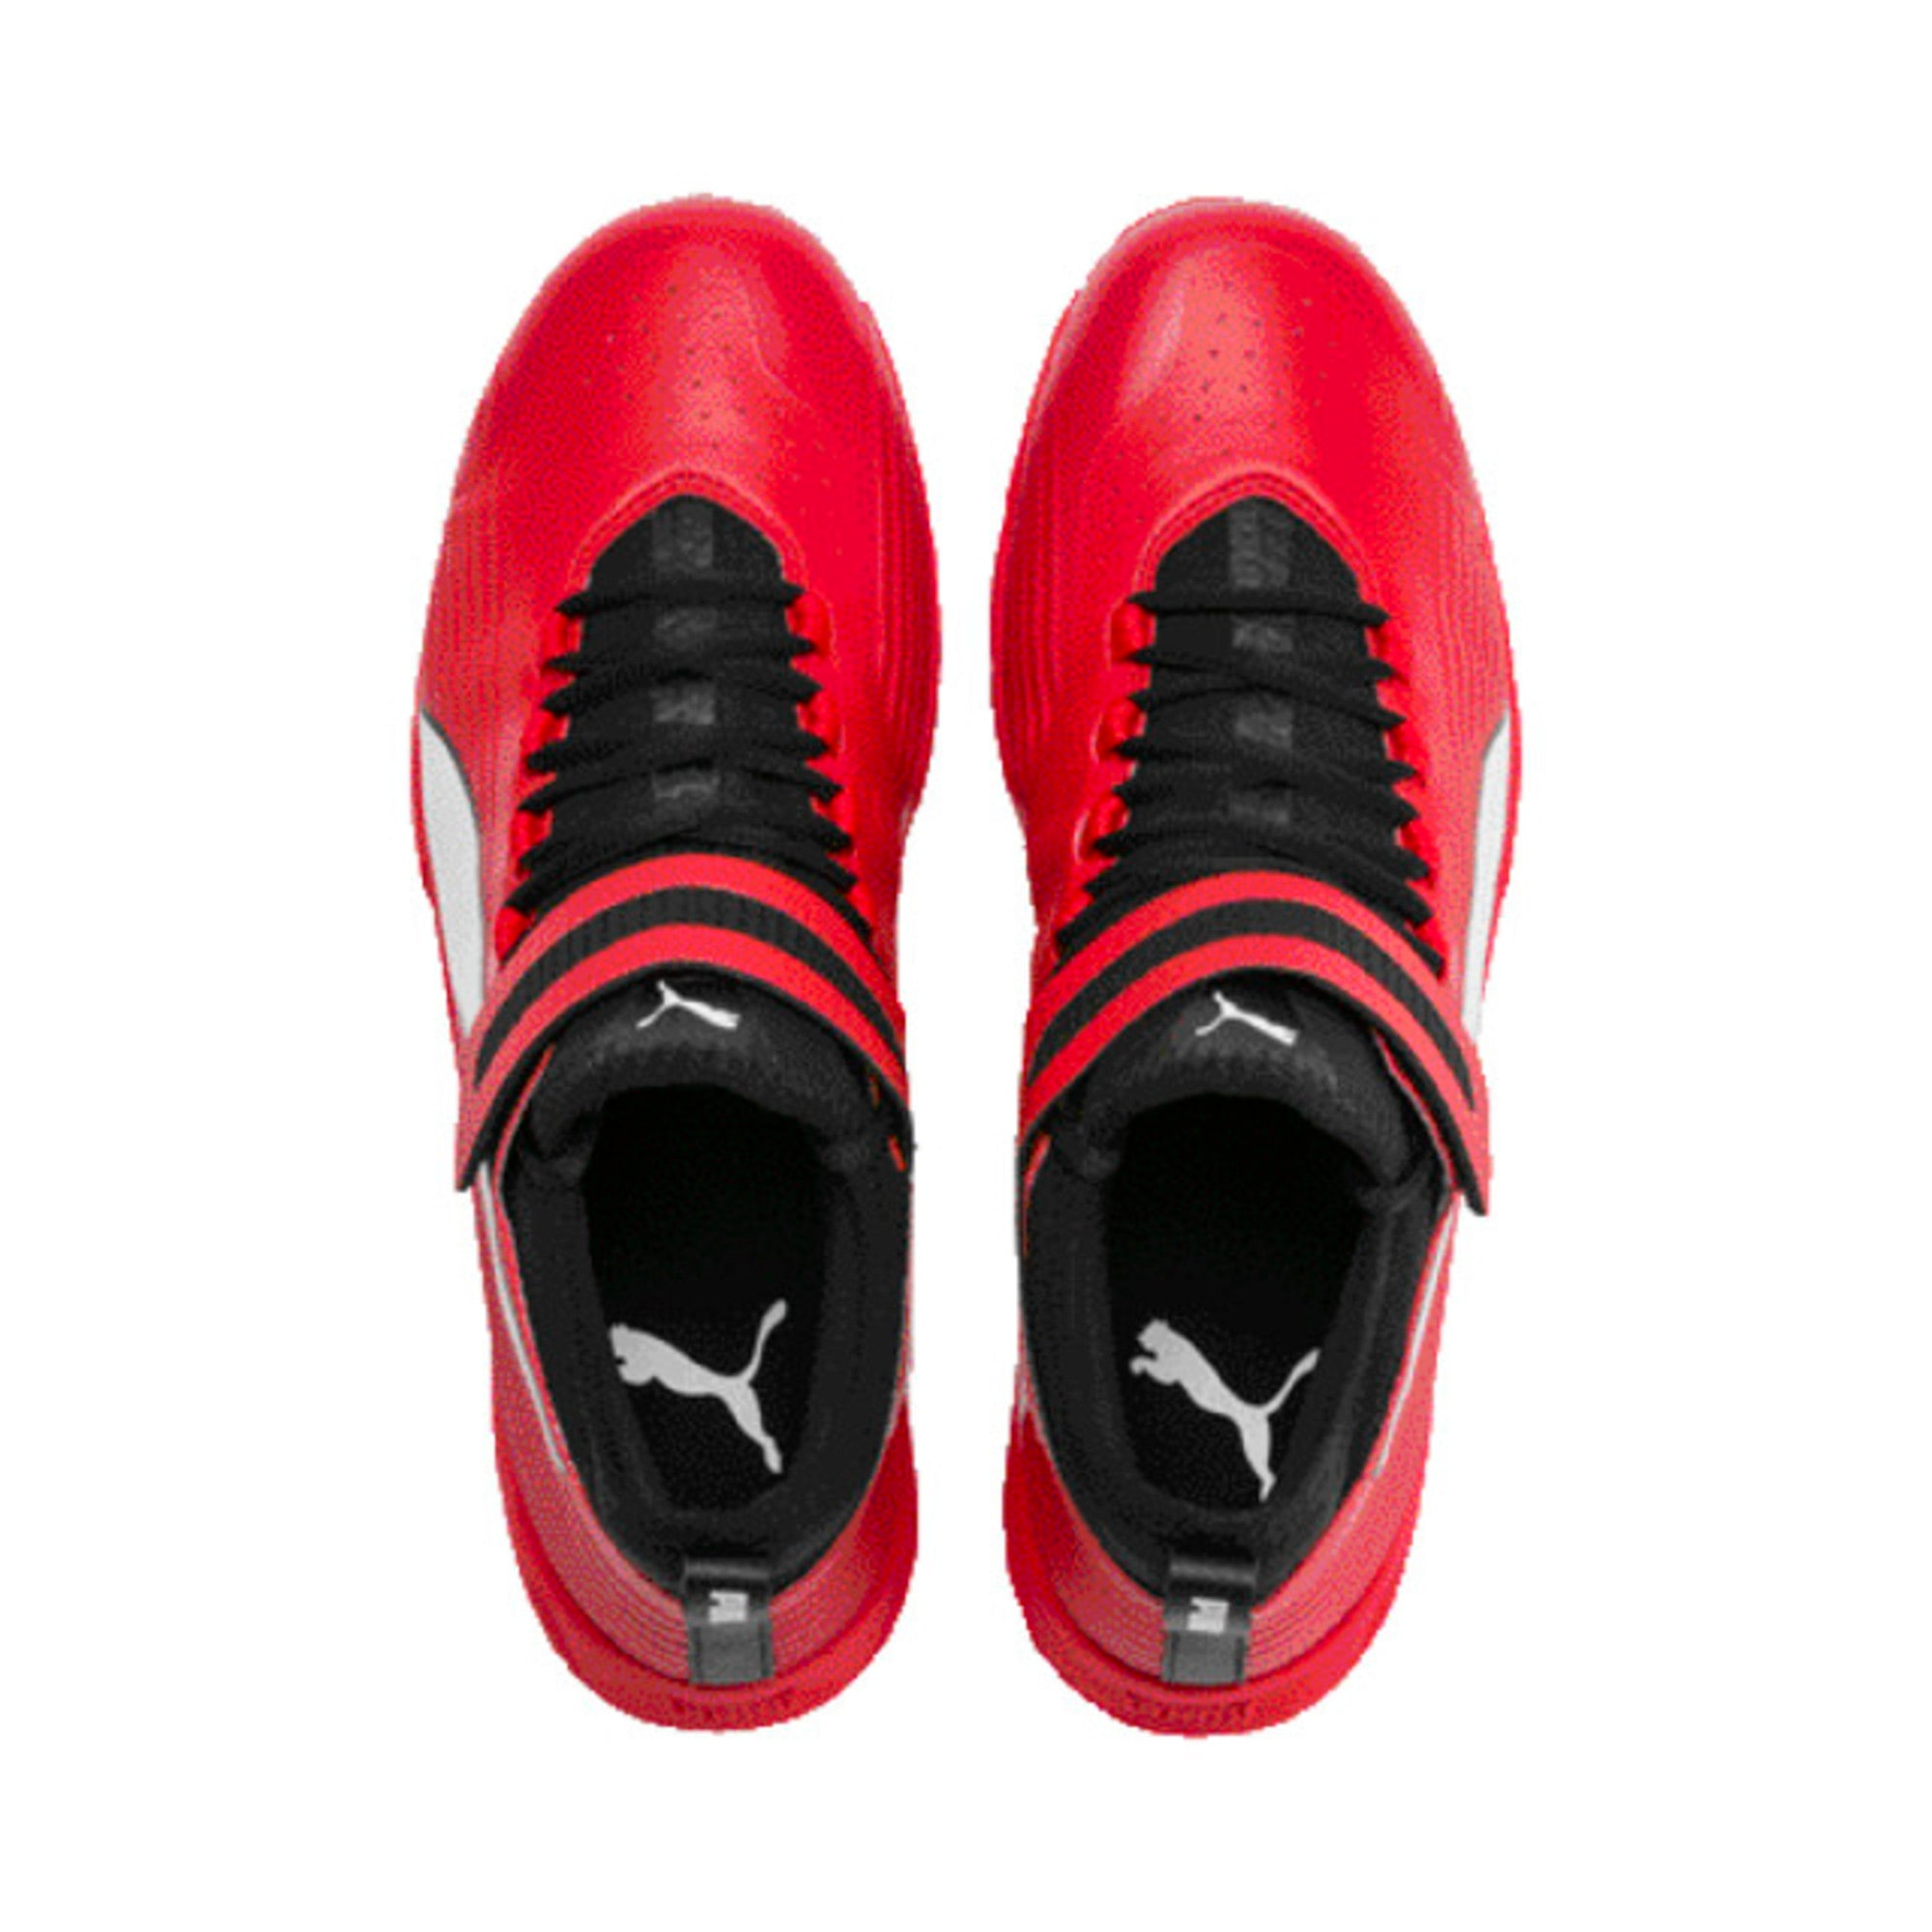 Thumbnail 2 of PUMA 19.1 Bowling Men's Cricket Shoes, High Risk Red-Black-White, medium-IND